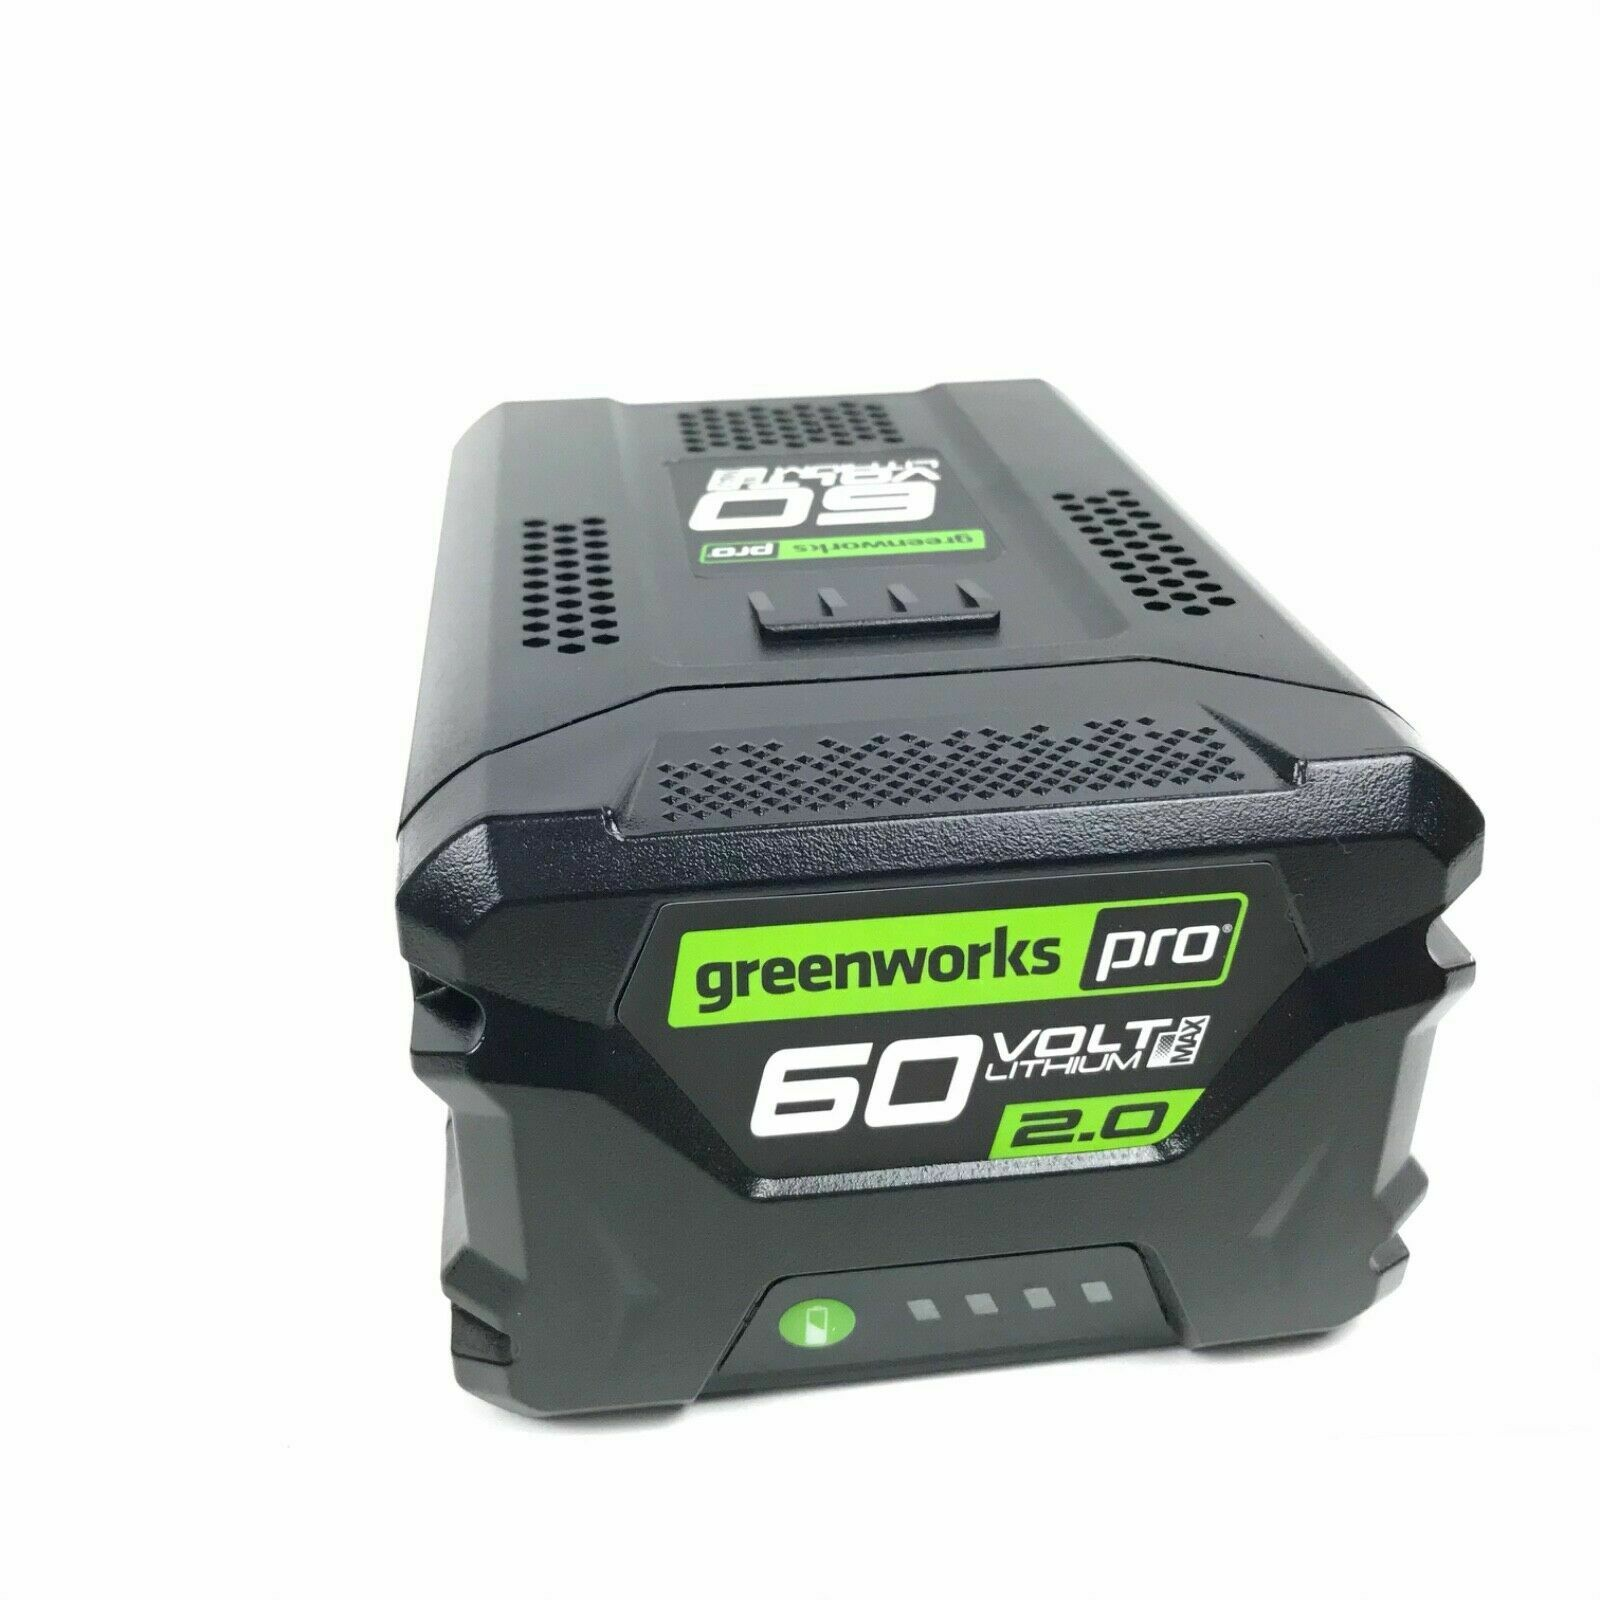 Greenworks Pro 60-Volt Lithium-Ion 60v 2.0AH Battery – LB60A00 New Free Shipping